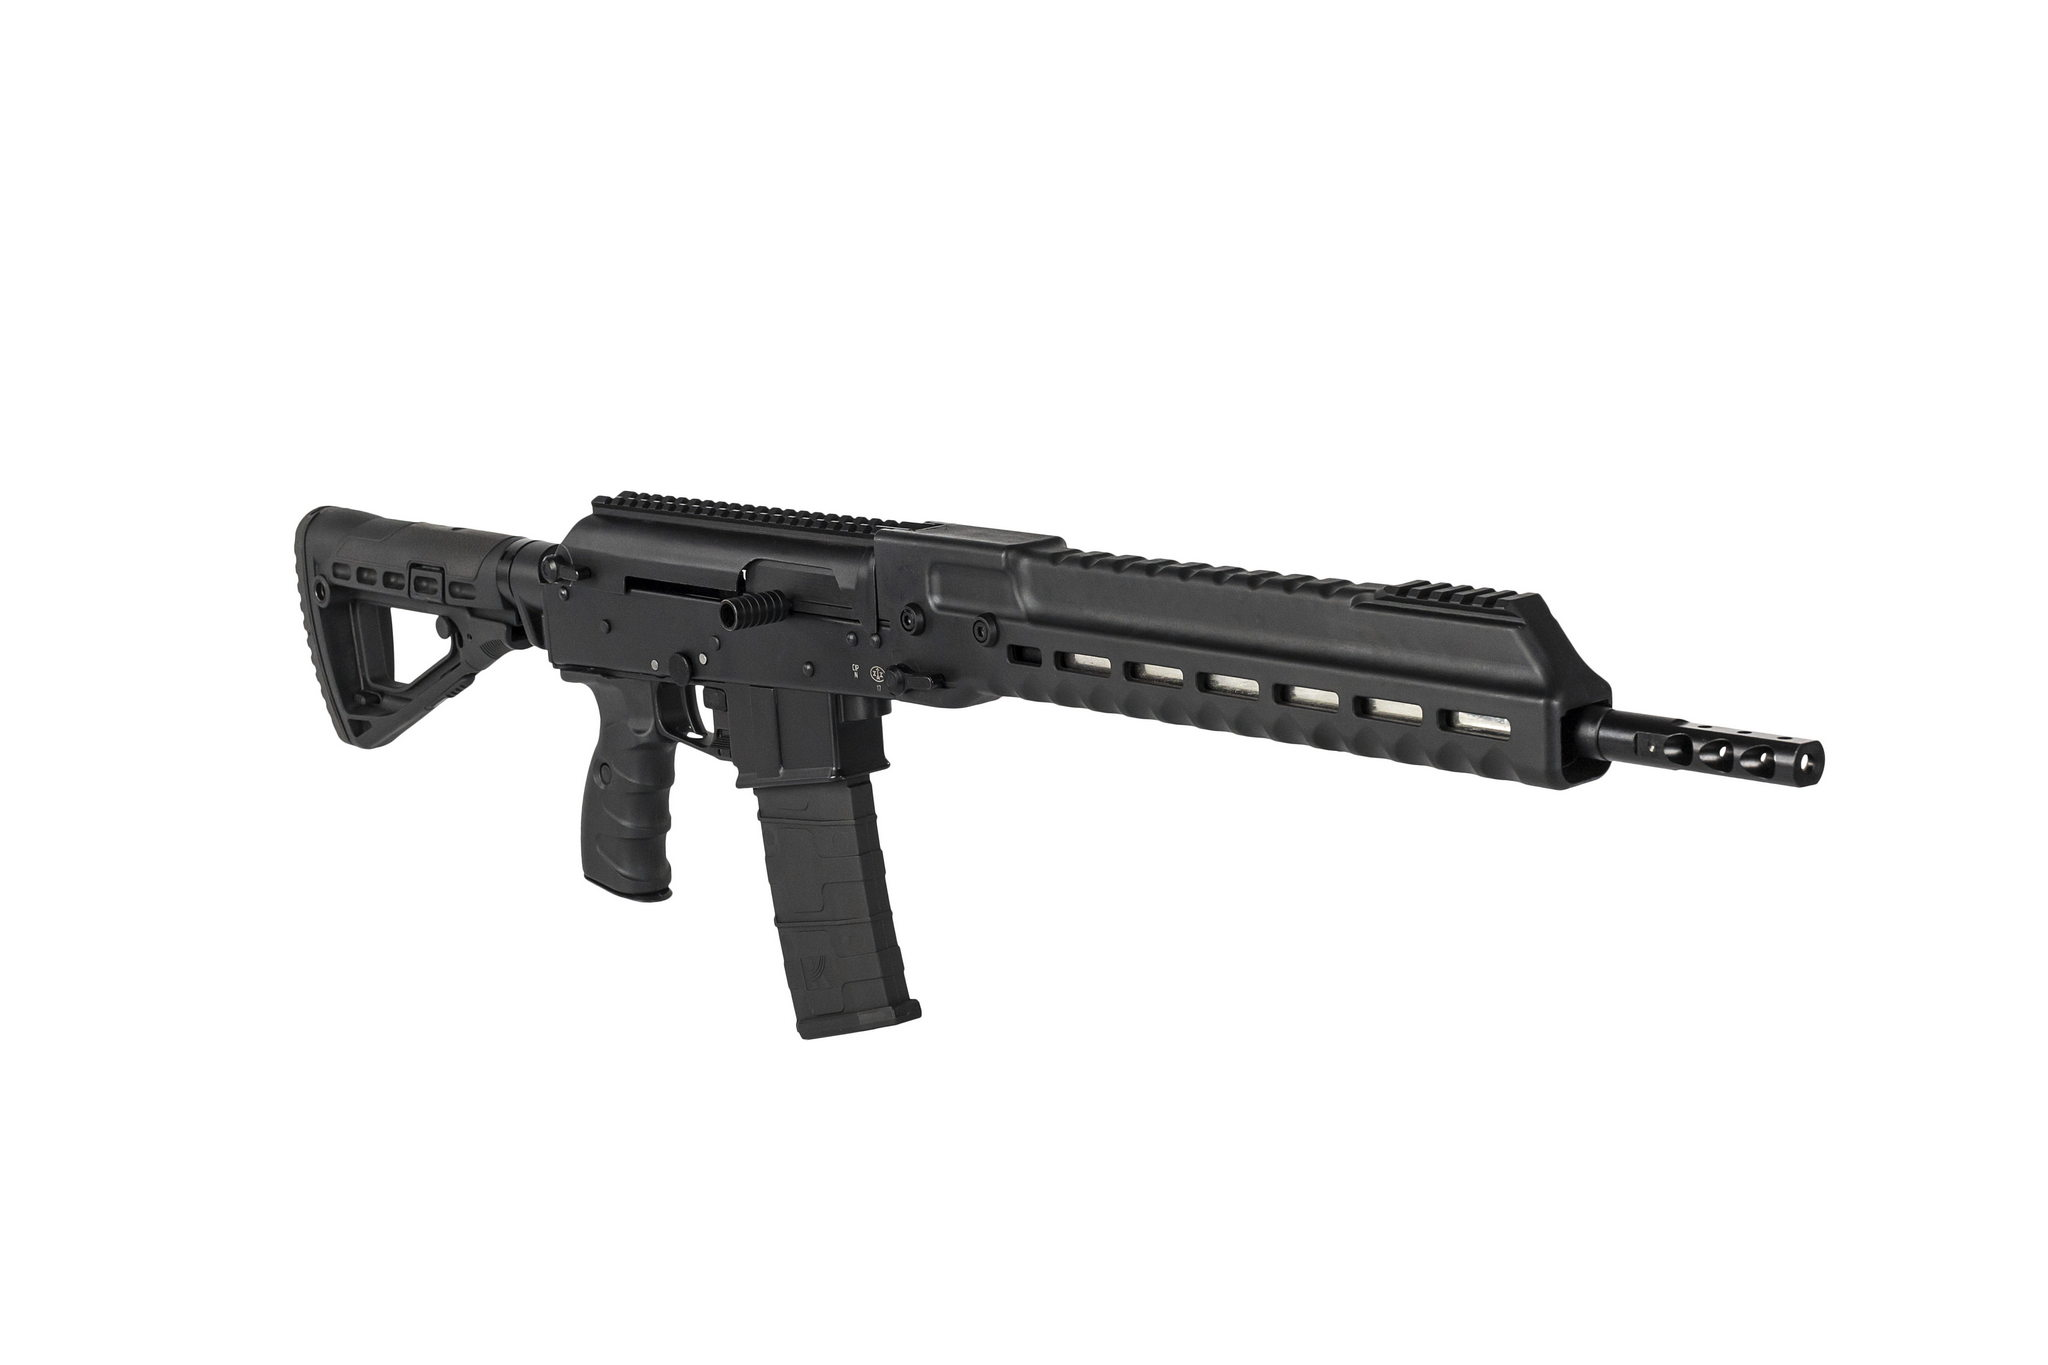 Kalashnikov SR1 semi-automatic rifle for competition shooters